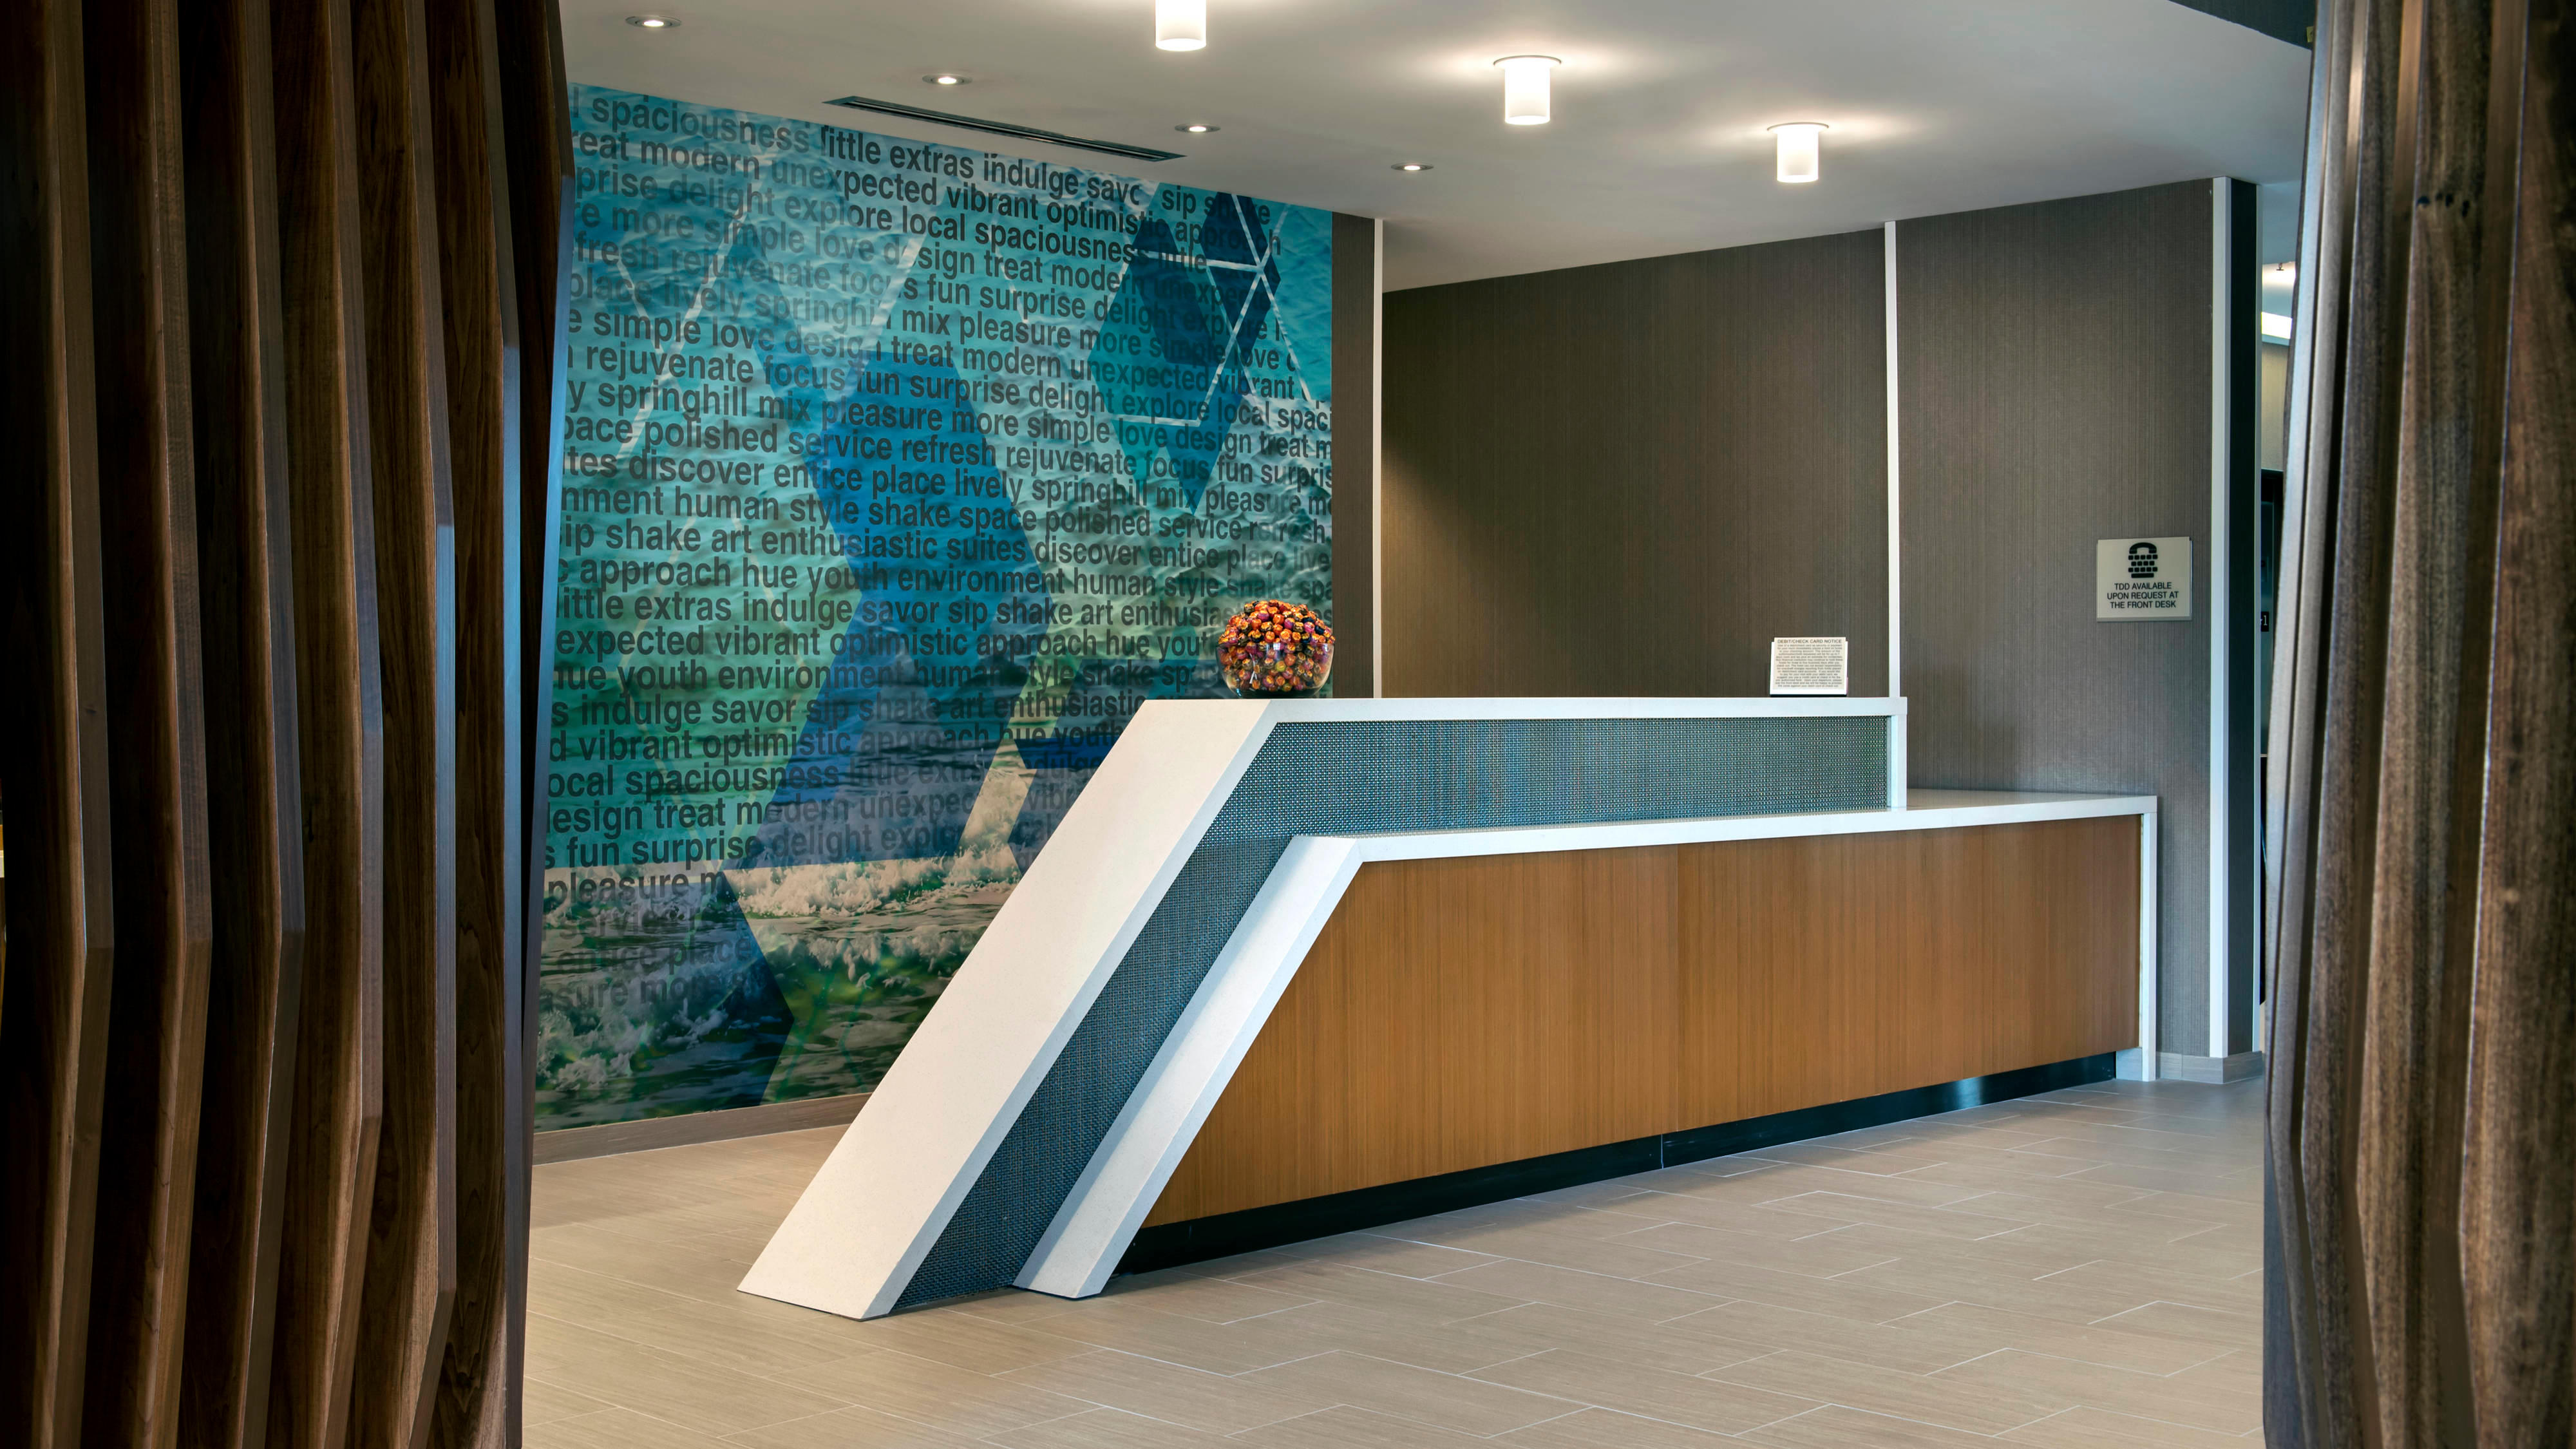 SpringHill Suites by Marriott Tampa Suncoast Parkway image 1